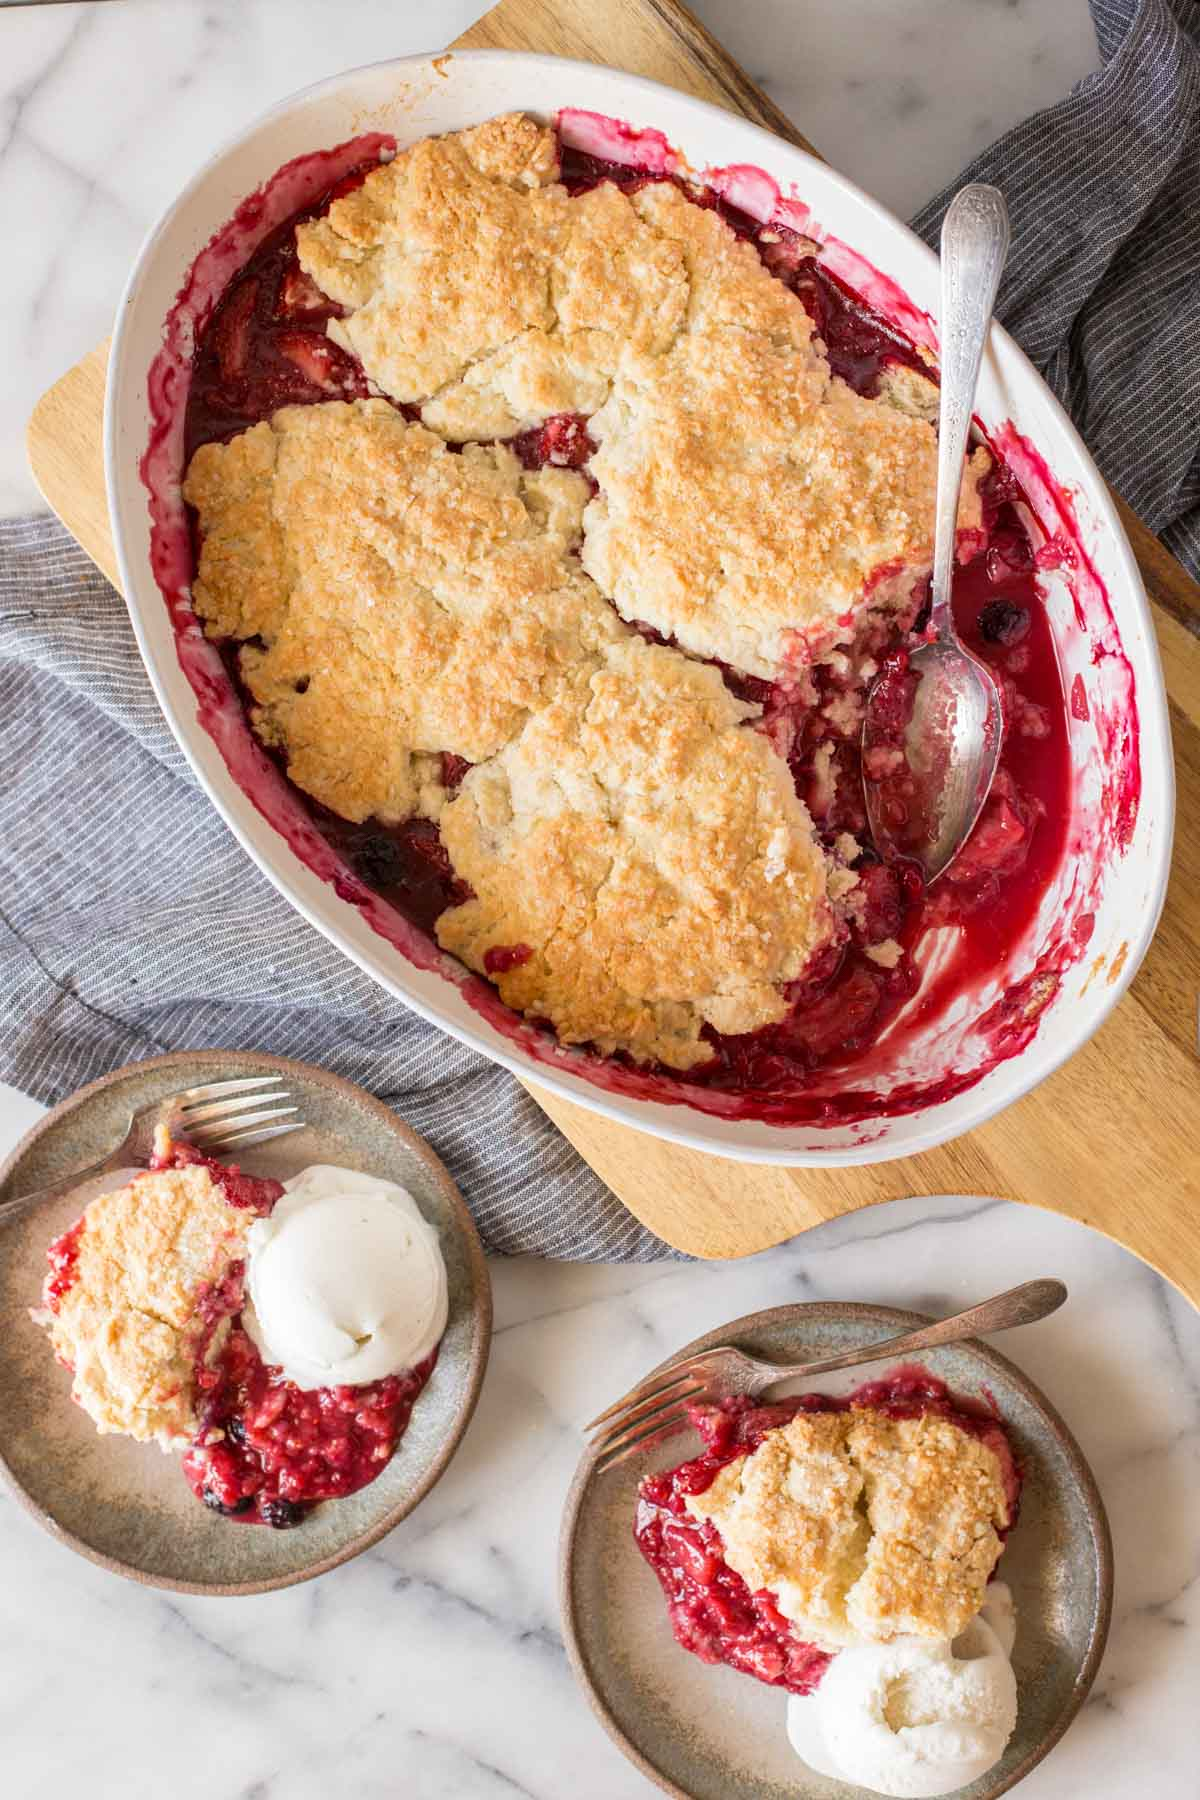 Overhead shot of Triple Berry Cobbler in a baking dish, with two plates of Triple Berry Cobbler each with a scoop of vanilla ice cream next to the baking dish.